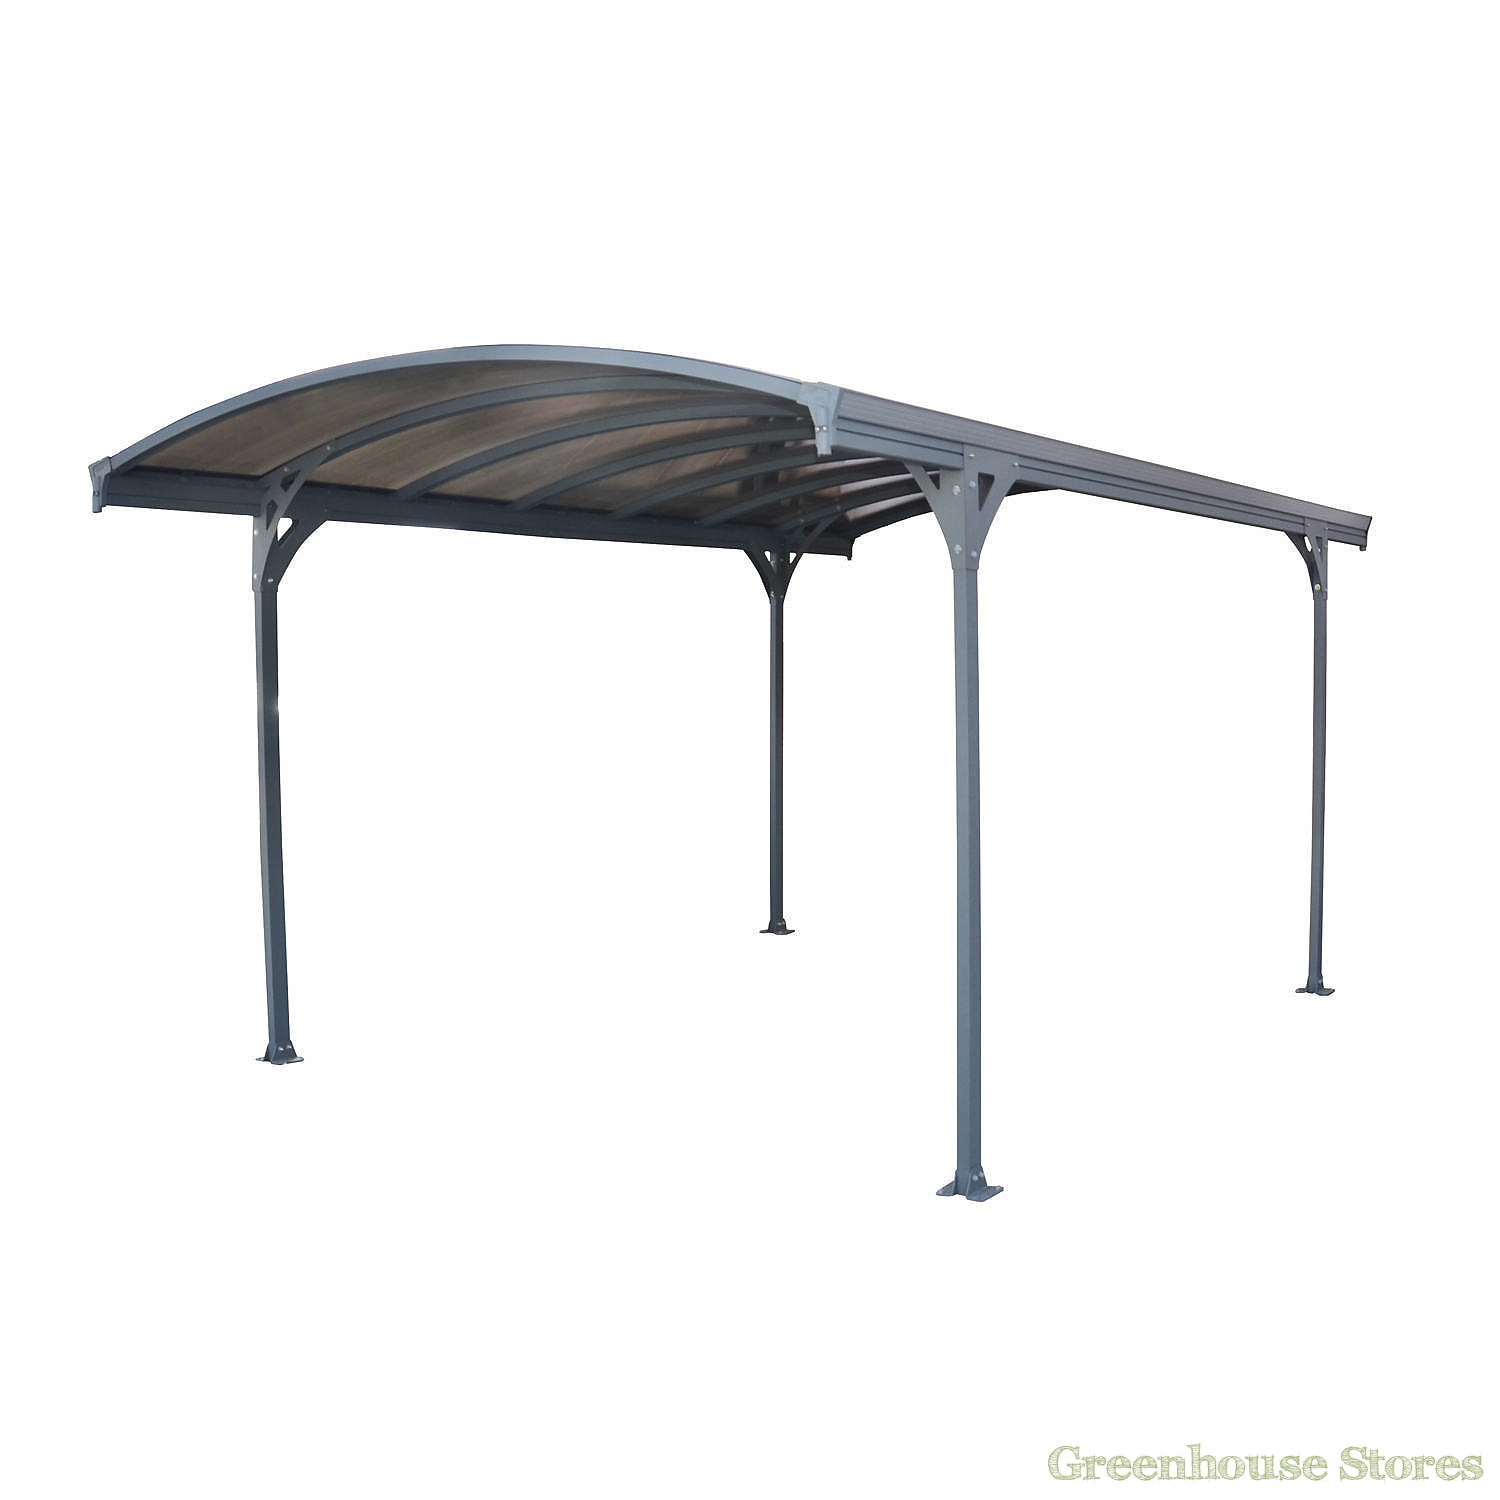 Palram vitoria 5000 carport greenhouse stores for Table exterieur galvanise